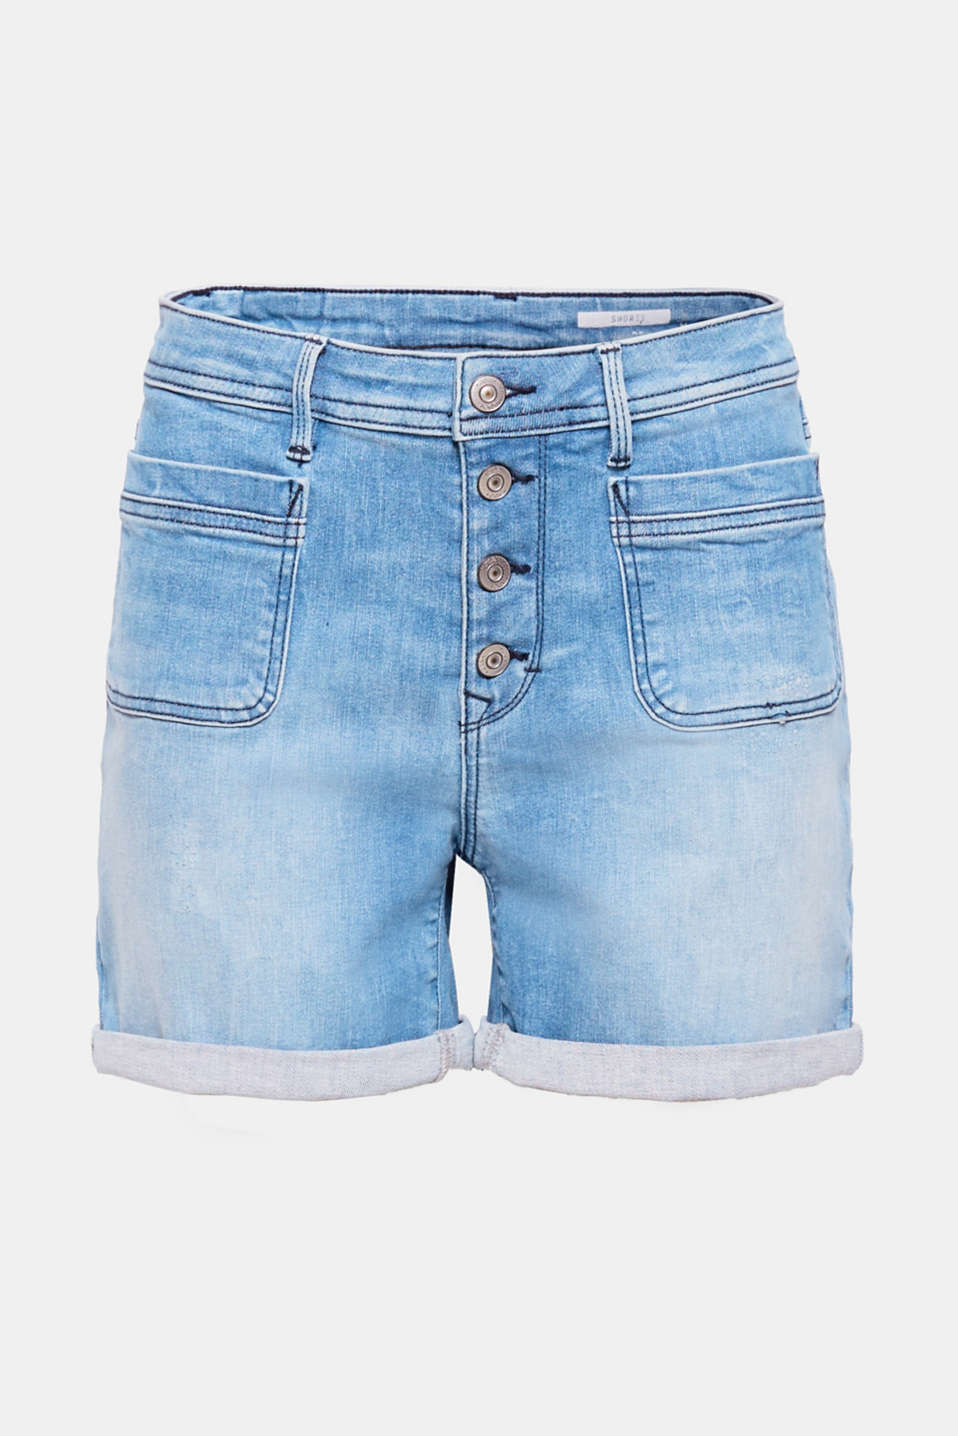 These casual, garment-washed denim shorts have a cool, trendy look thanks to the button placket, patch pockets and fixed turn-up hems.